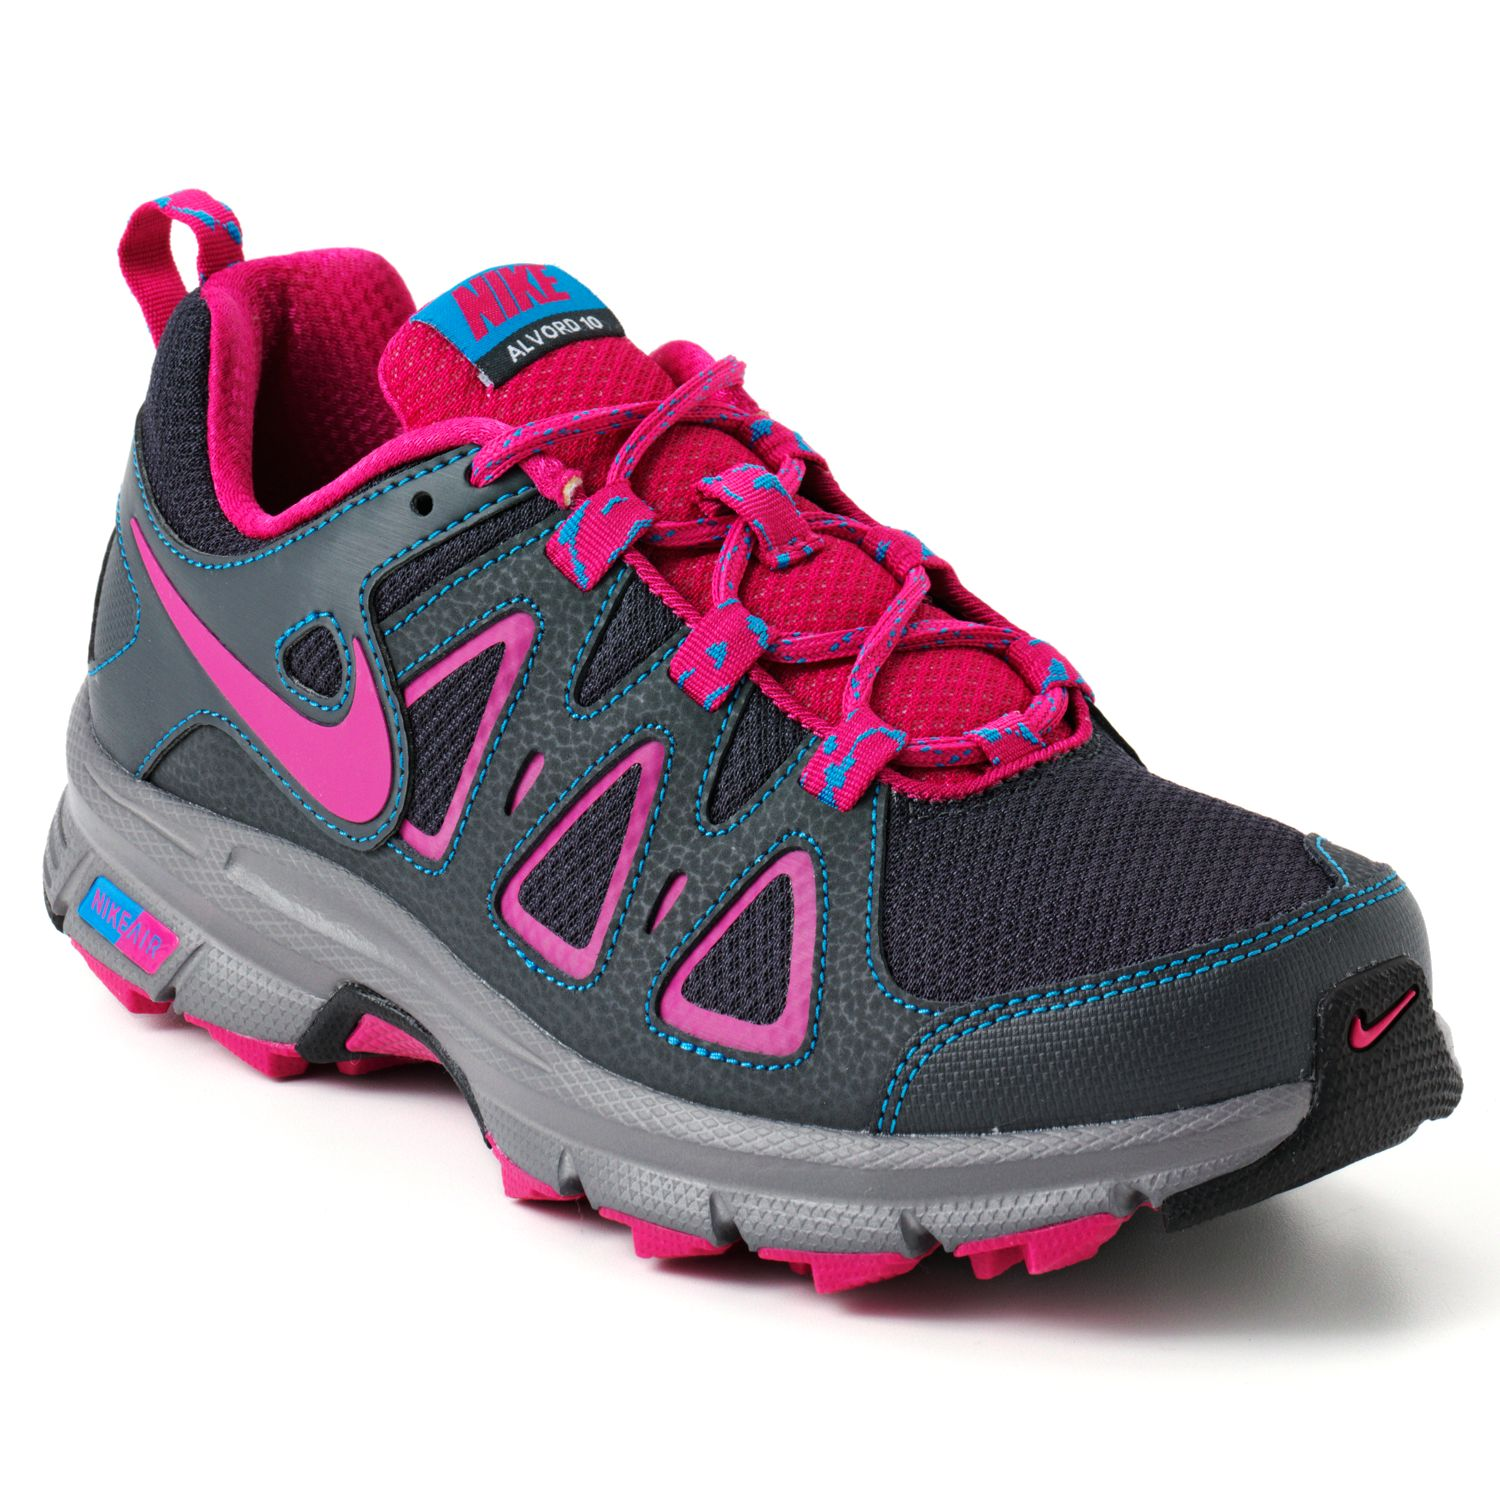 Nike Black Air Alvord 10 Wide Trail Running Shoes - Women